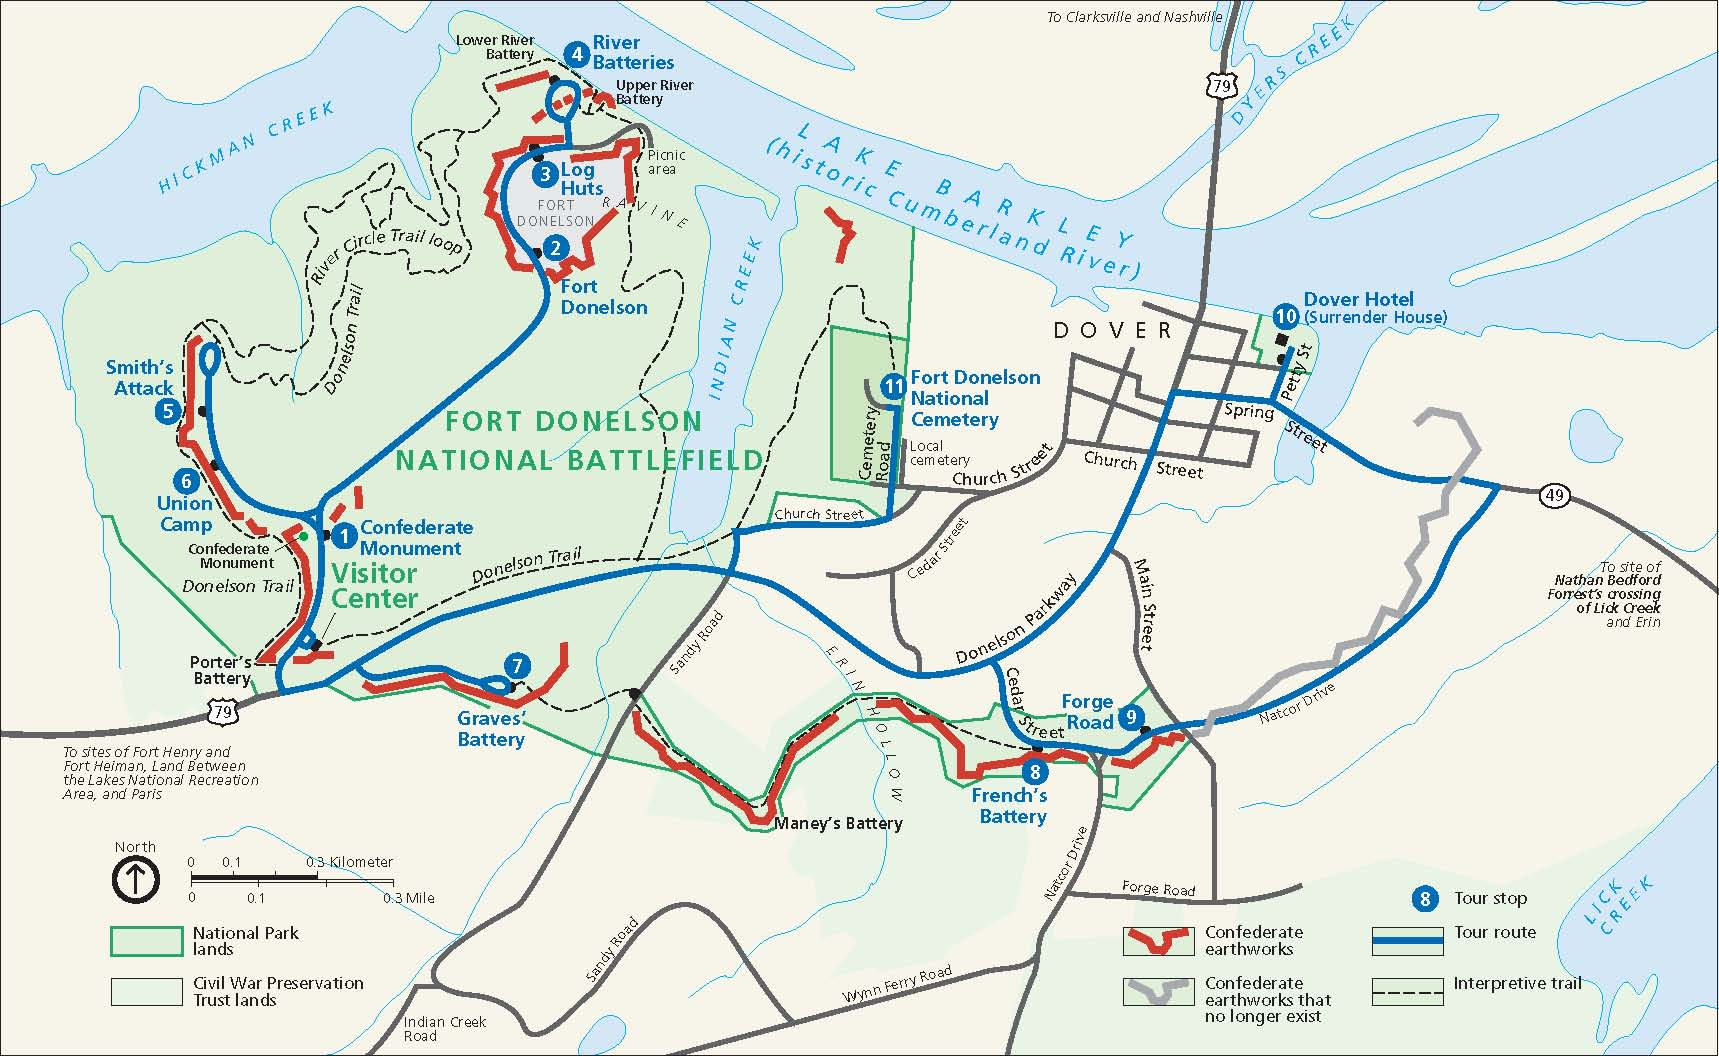 Fort Donelson 2010 map